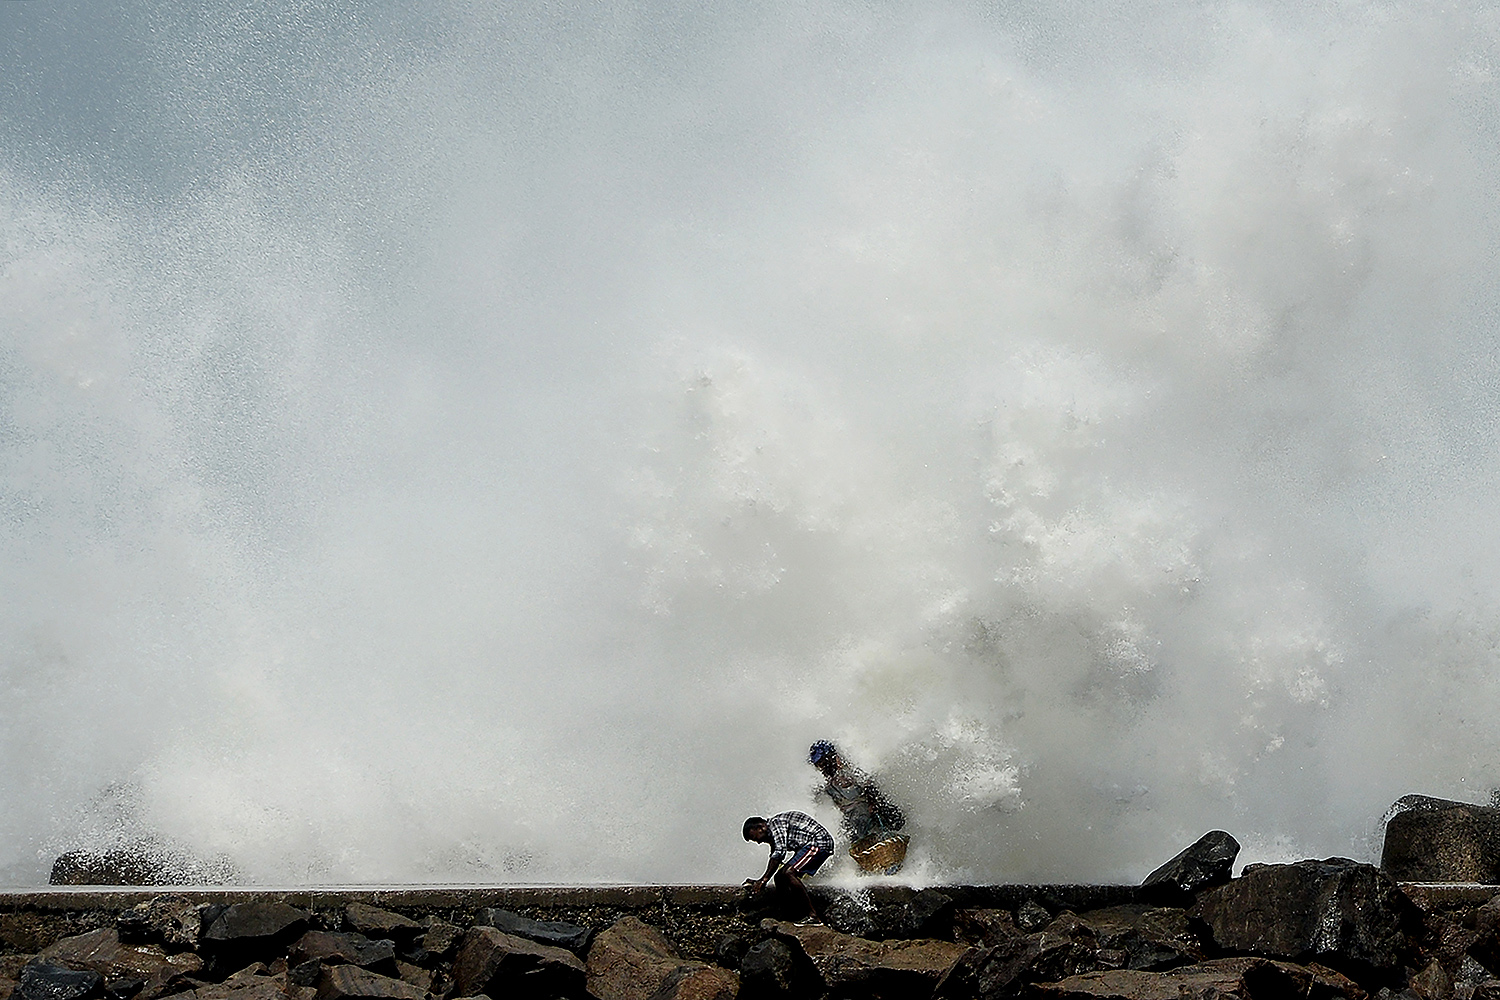 Men are hit by waves at Kasimedu fishing harbor in Chennai, India, on May 19 as Cyclone Amphan barrels toward the coast. ARUN SANKAR/AFP via Getty Images